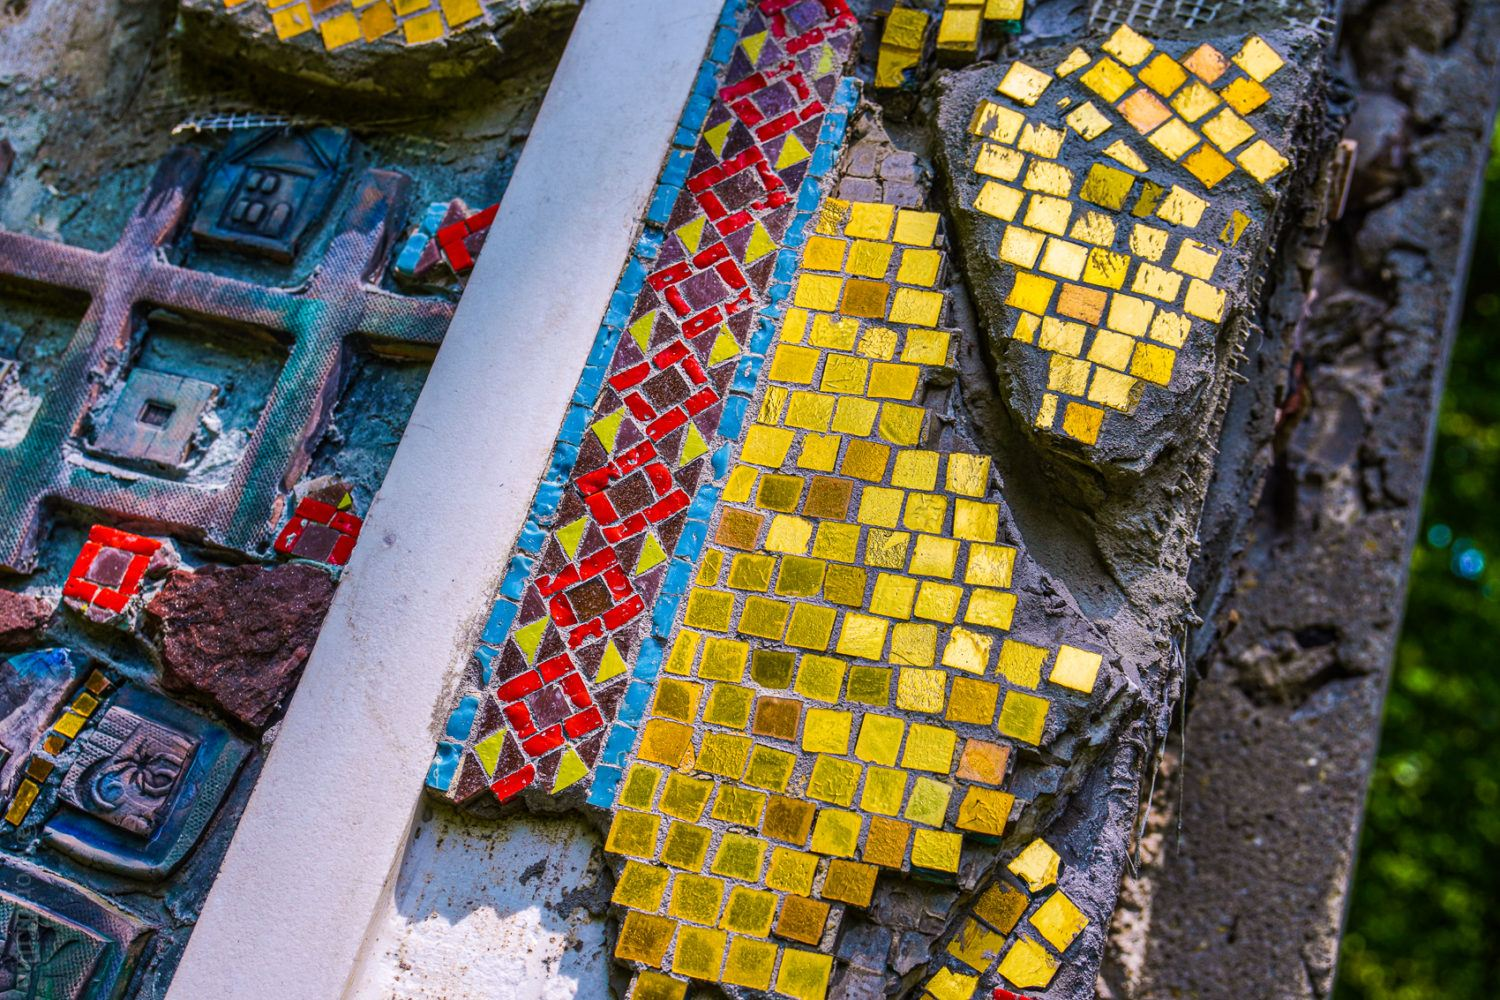 Gold mosaic tiles salvaged from an old church.